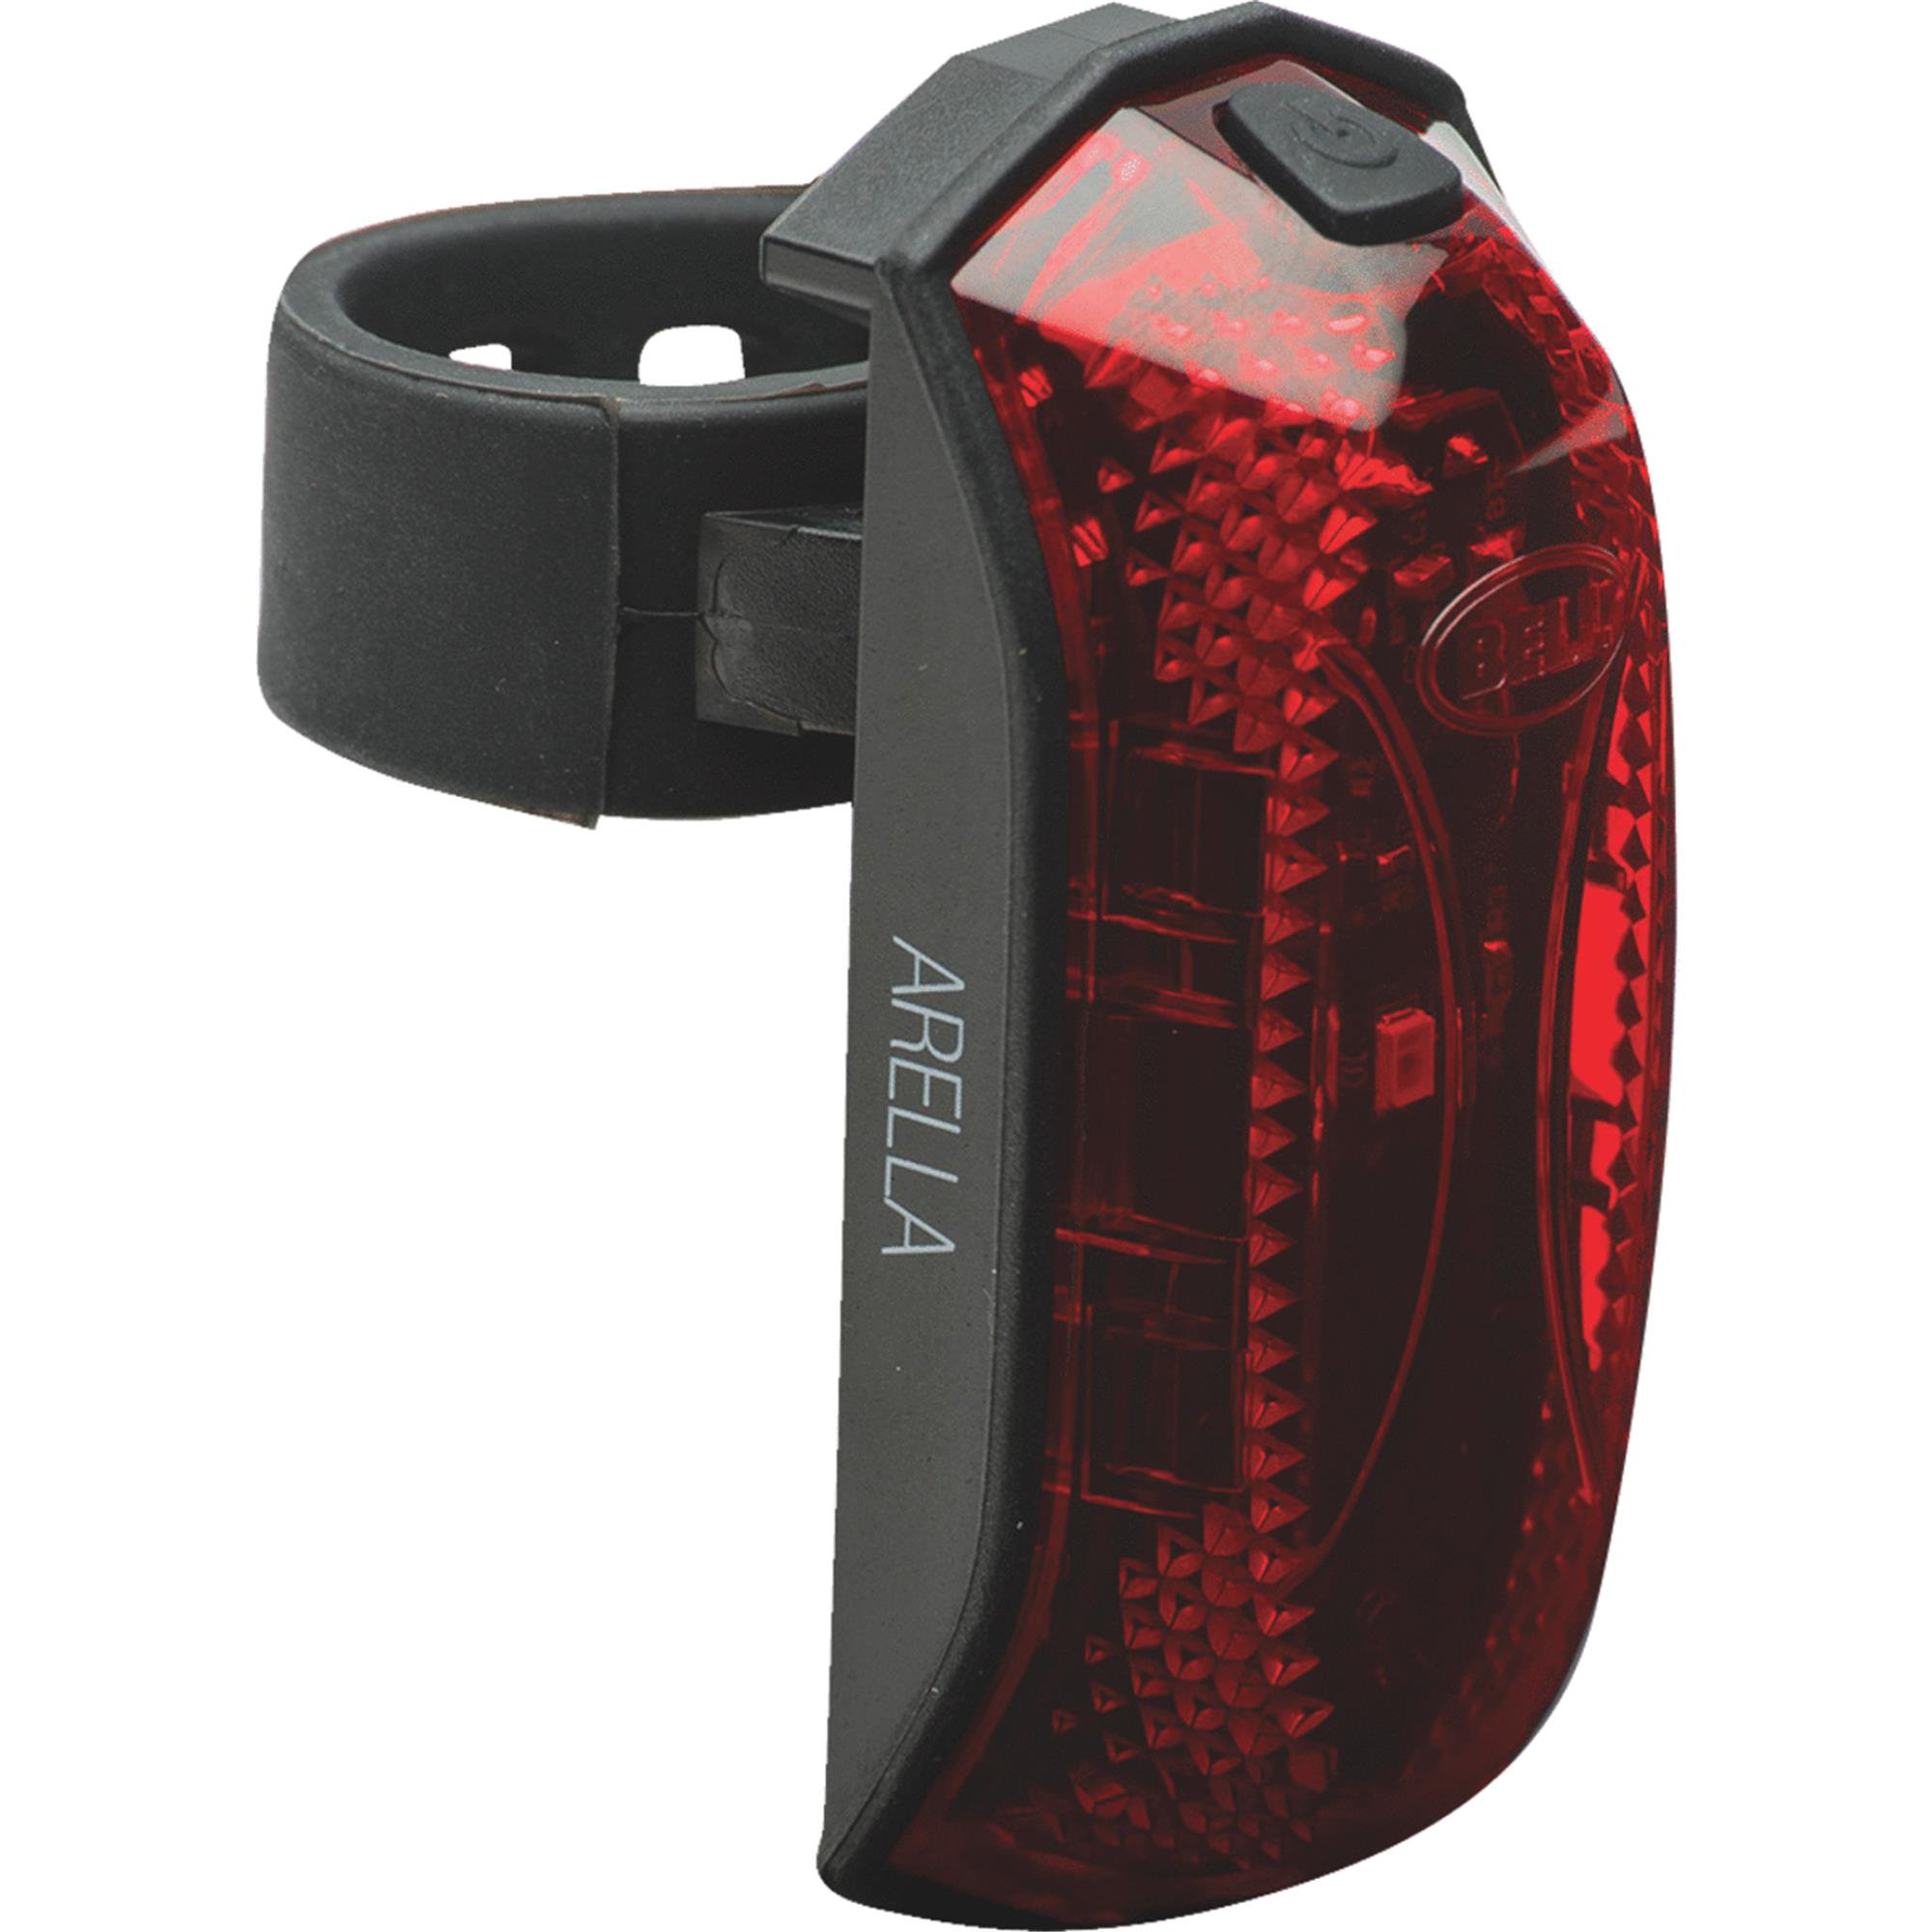 Bell Sports Arella 100 Bicycle Tail Light, Black